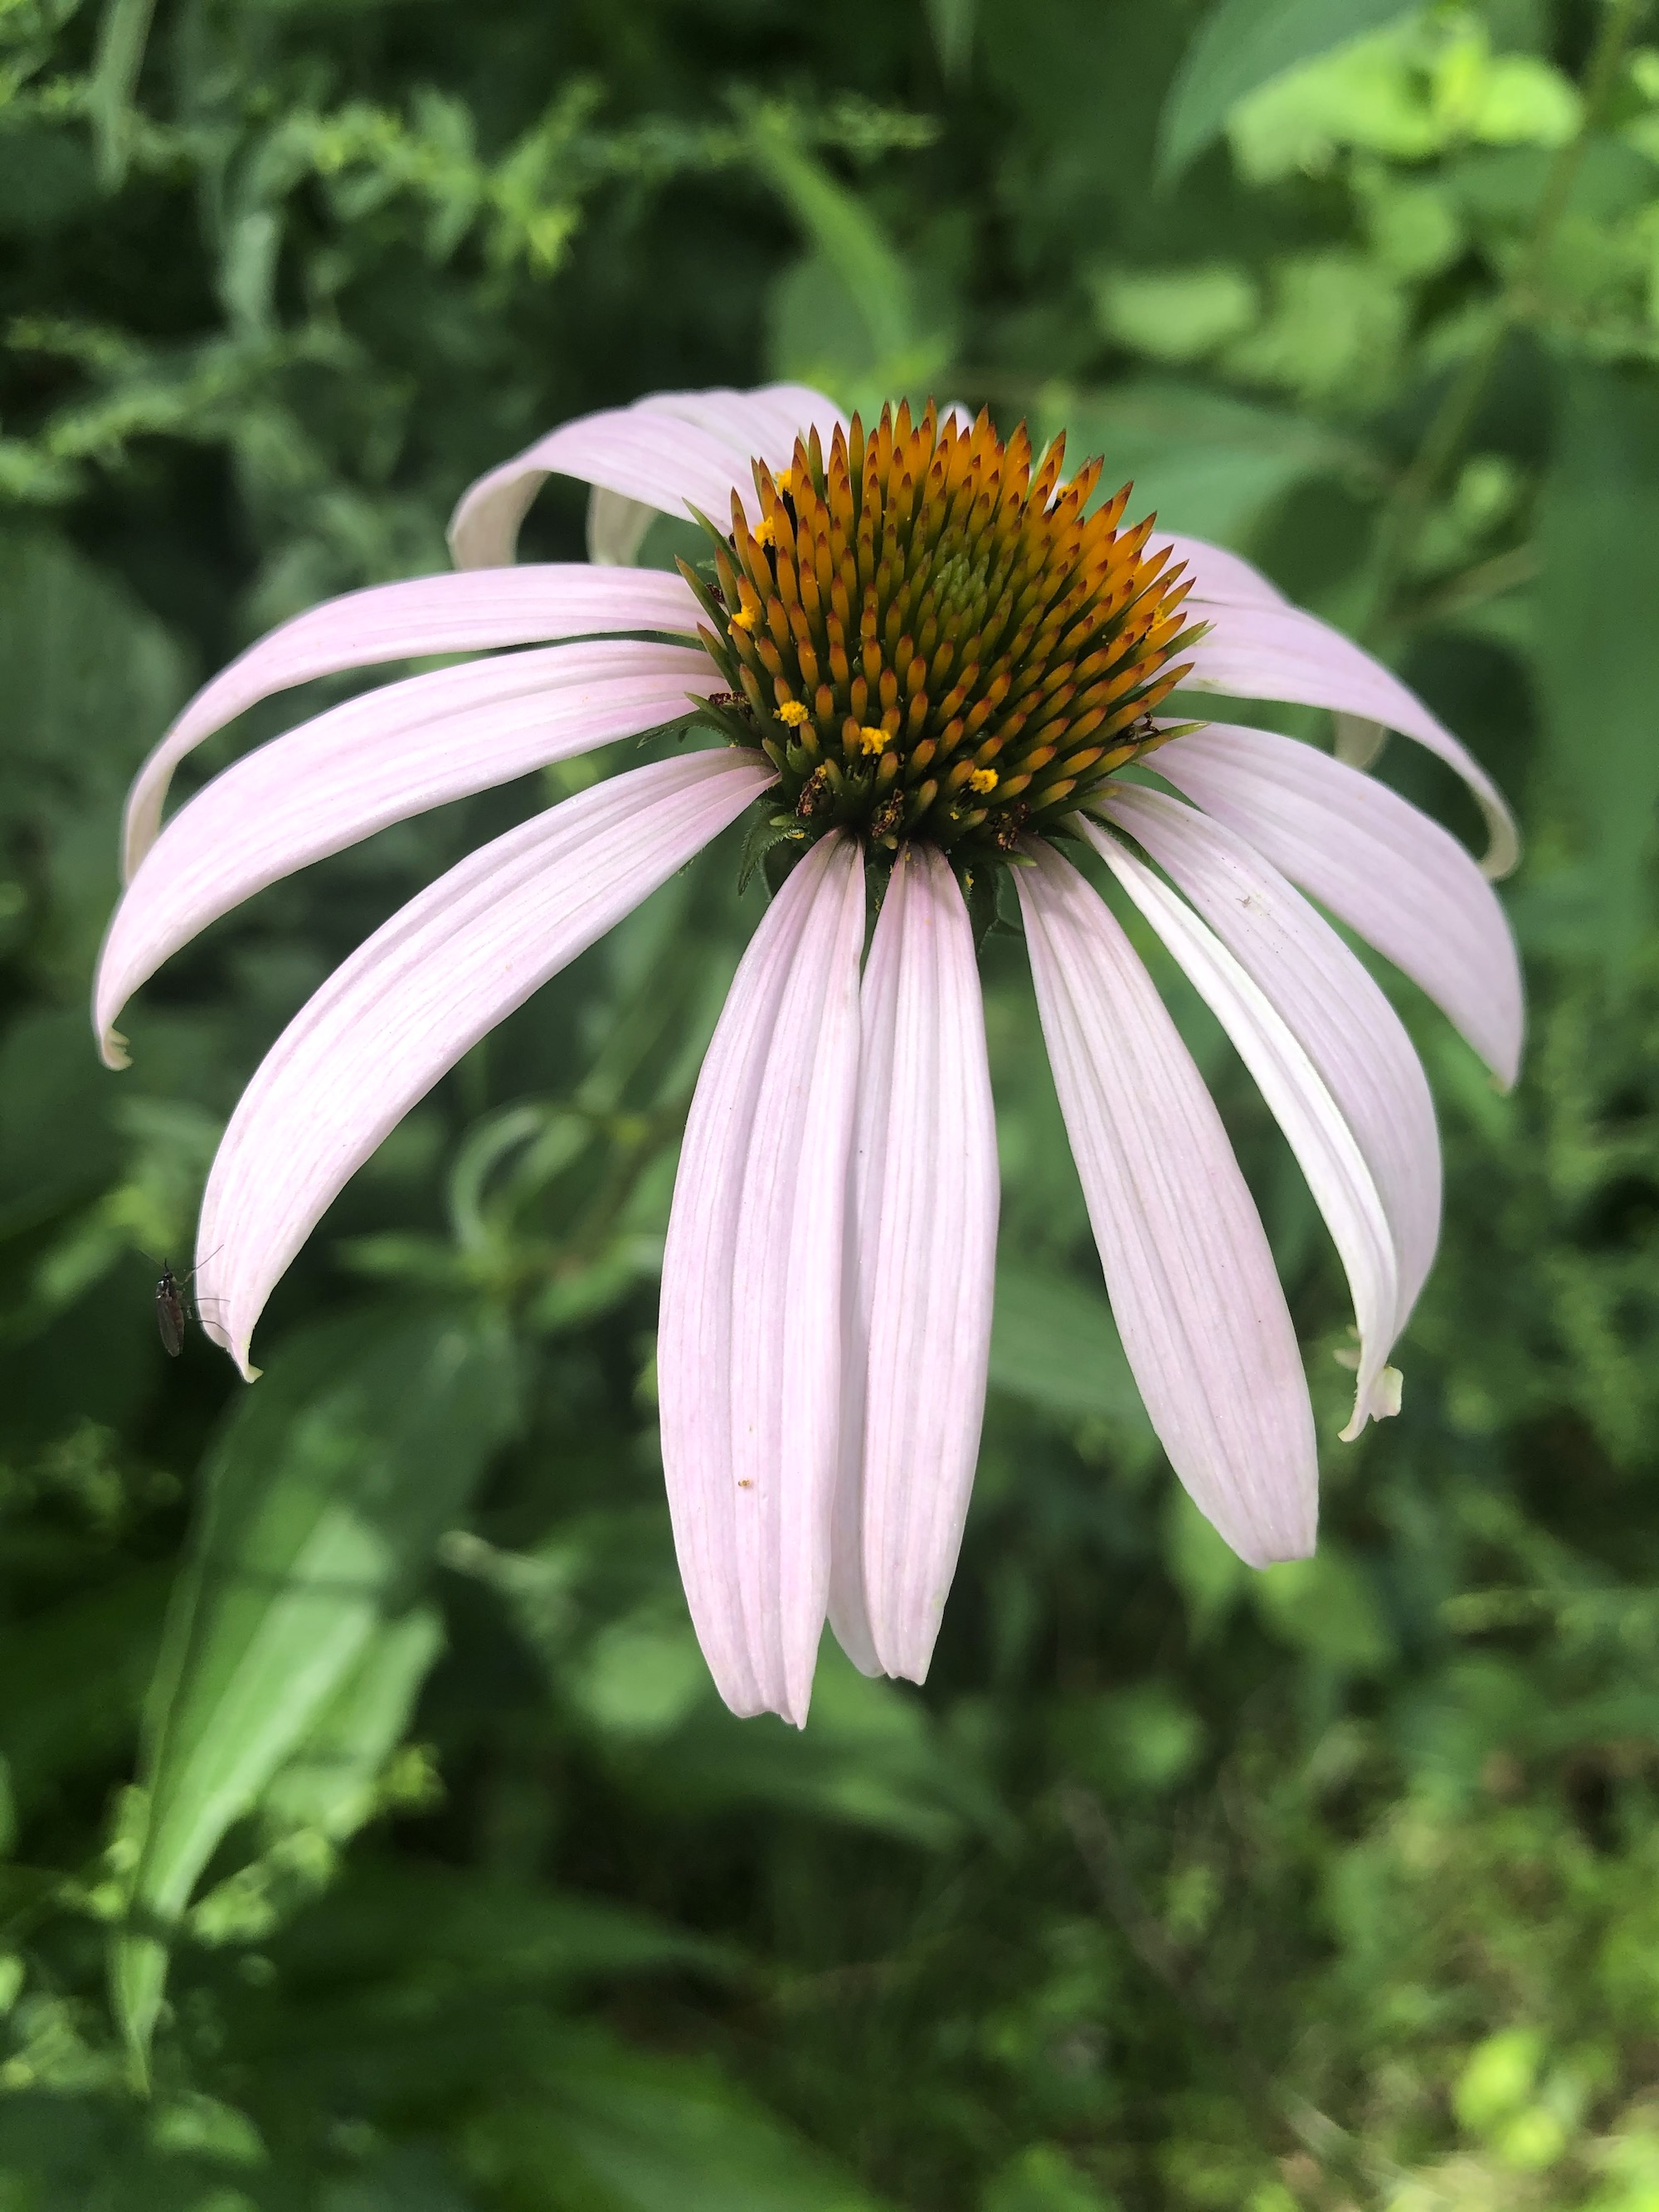 Purple coneflower in the woods in Nakoma Park in Madison, Wisconsin on July 23, 2020.